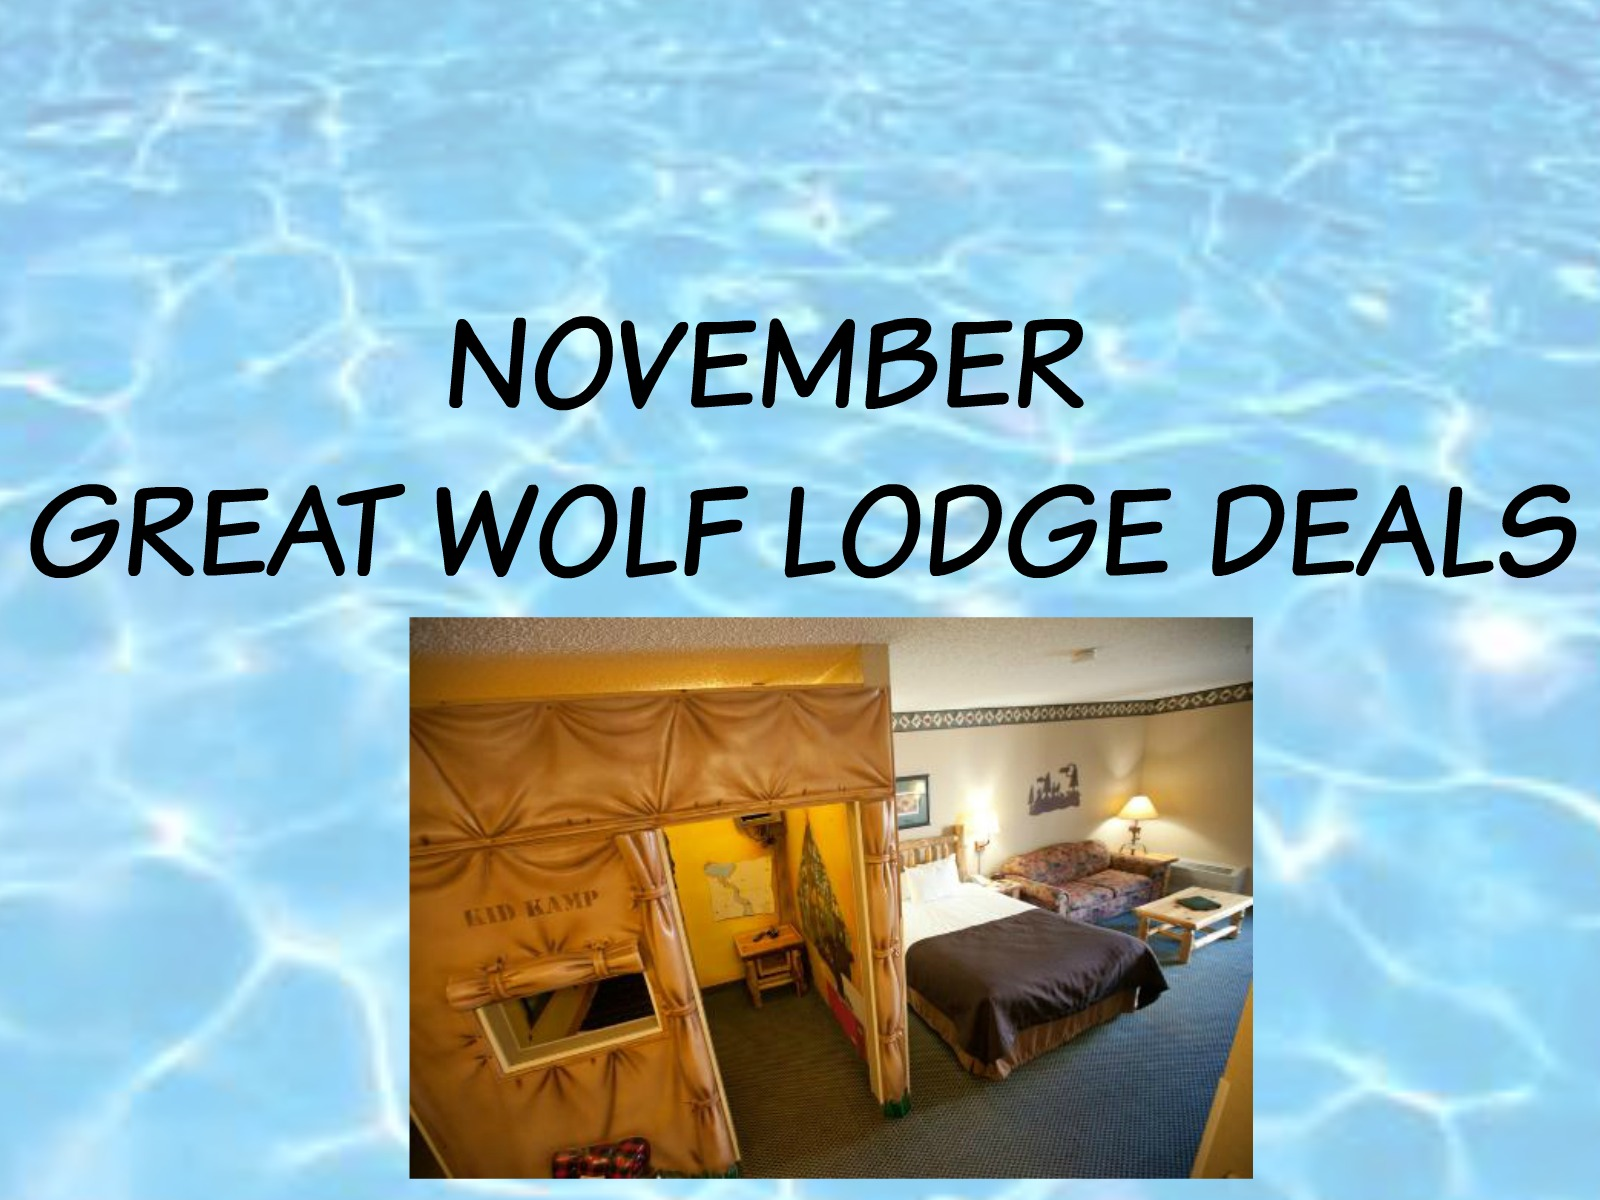 NOVEMBER GREAT WOLF LODGE DEALS